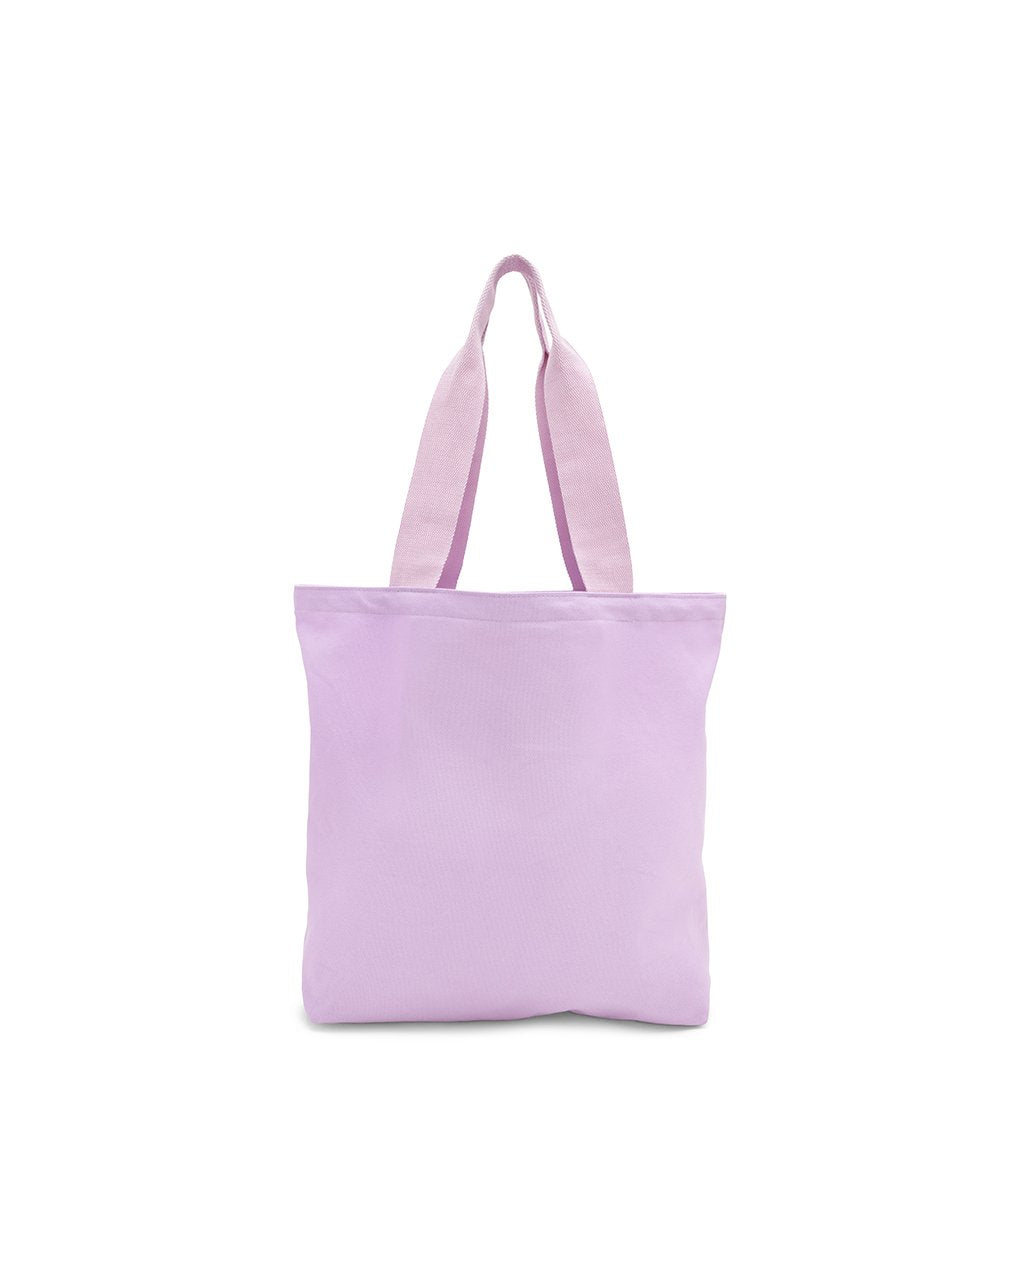 Big Canvas Tote - Going Places